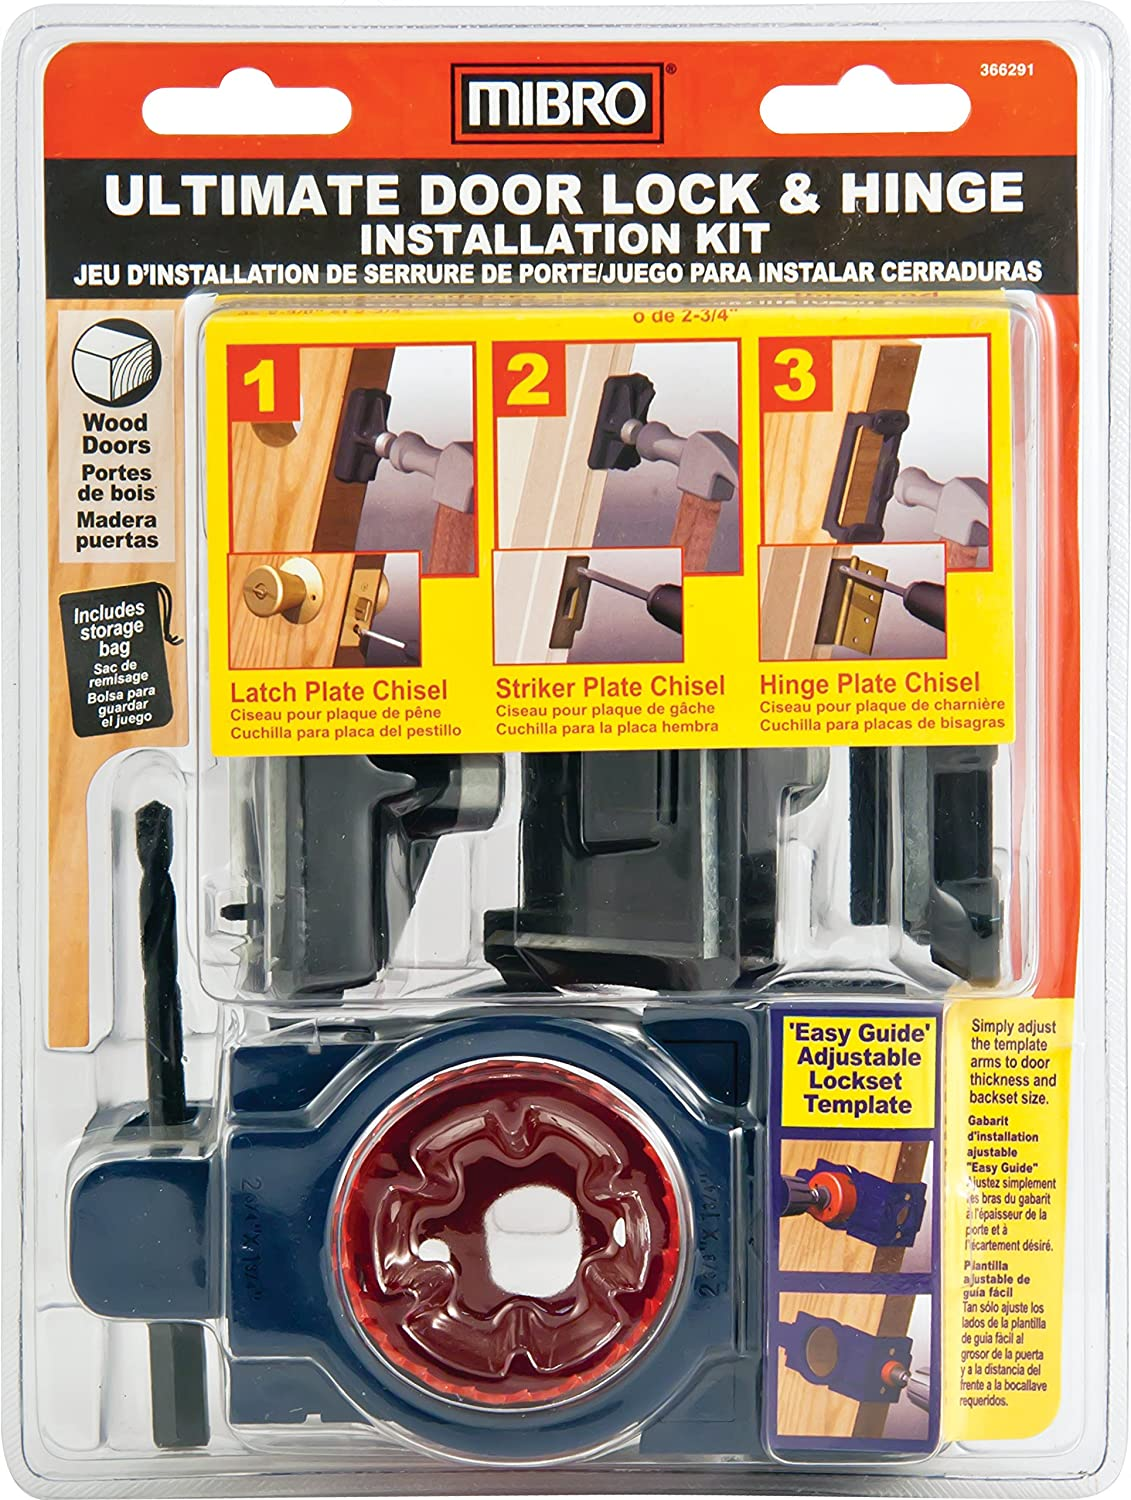 MIBRO 366291 Ultimate Door Lock and Hinge Installation Kit for Wood Doors - Doorjamb And Hinge Templates - Amazon.com